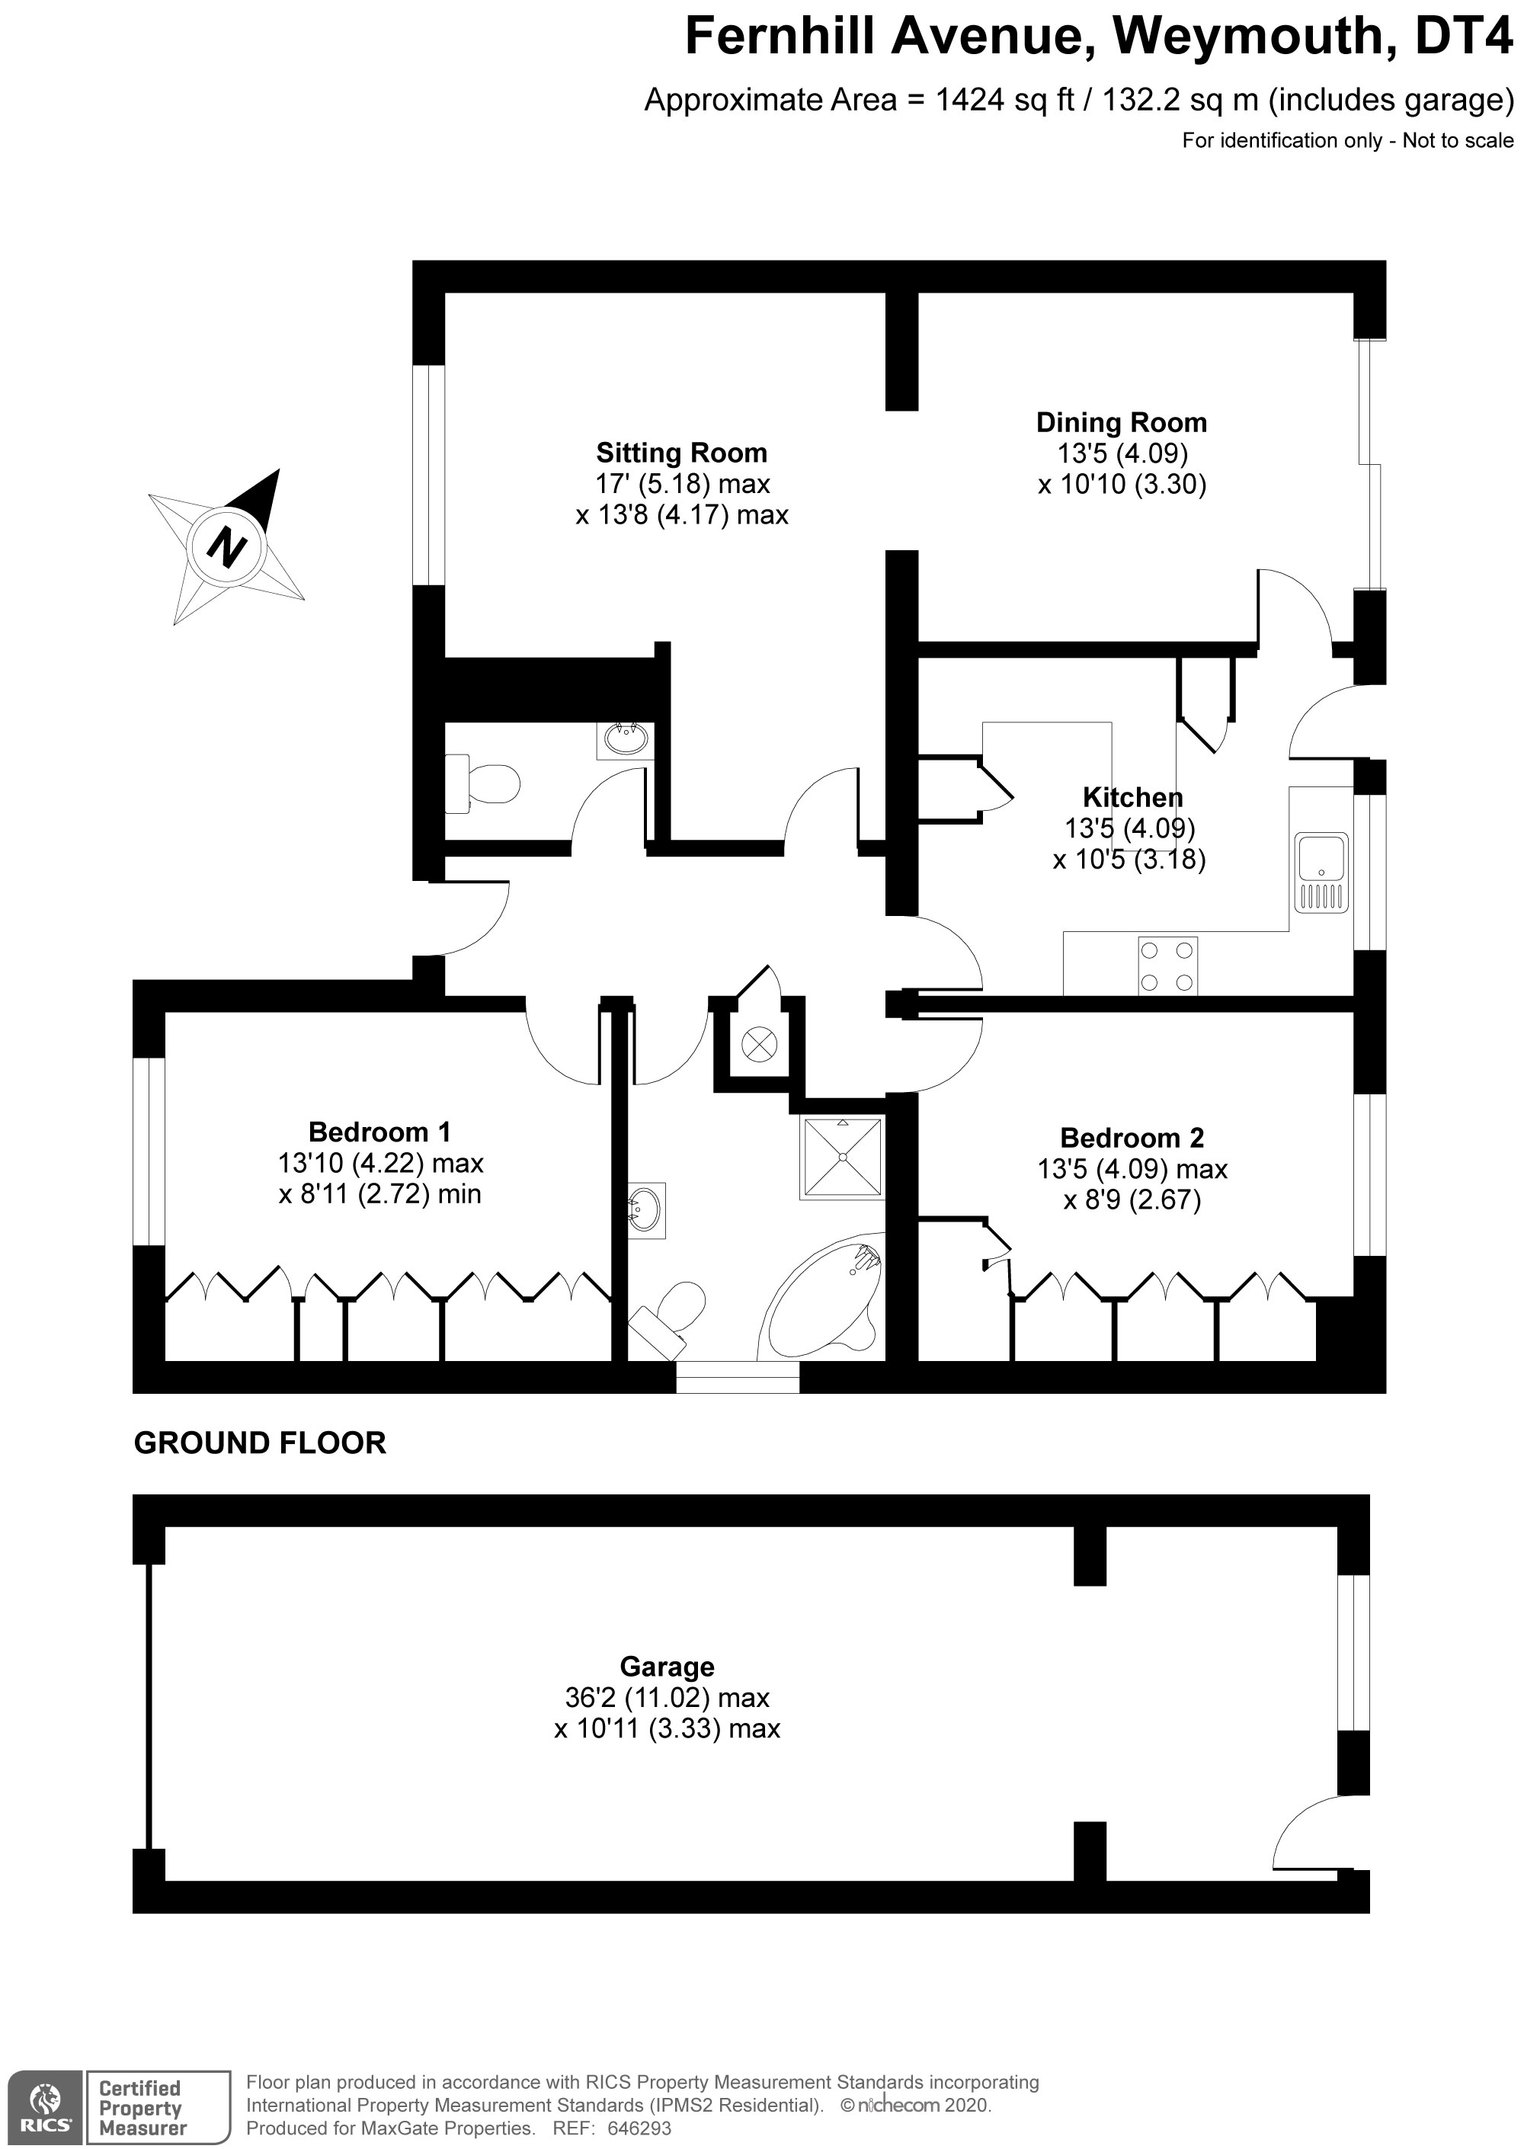 Floorplan for 30 Fernhill Avenue, Weymouth